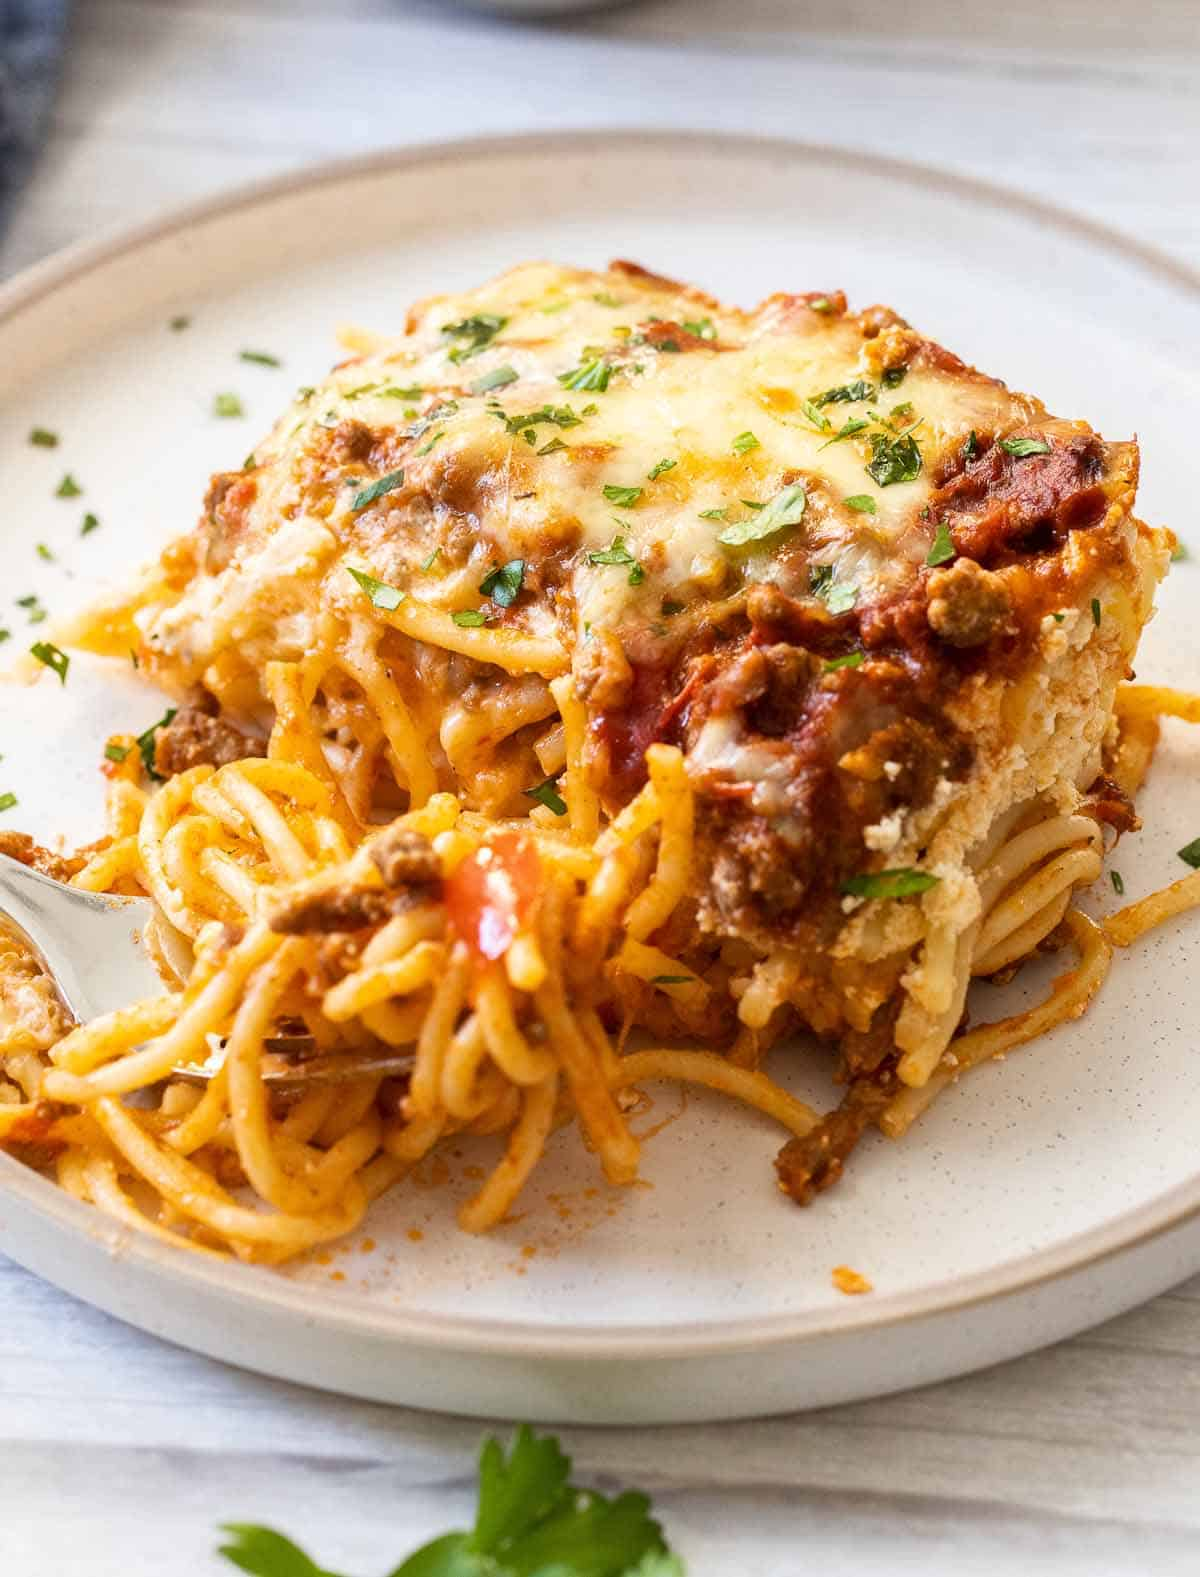 baked spaghetti casserole on a plate with fork